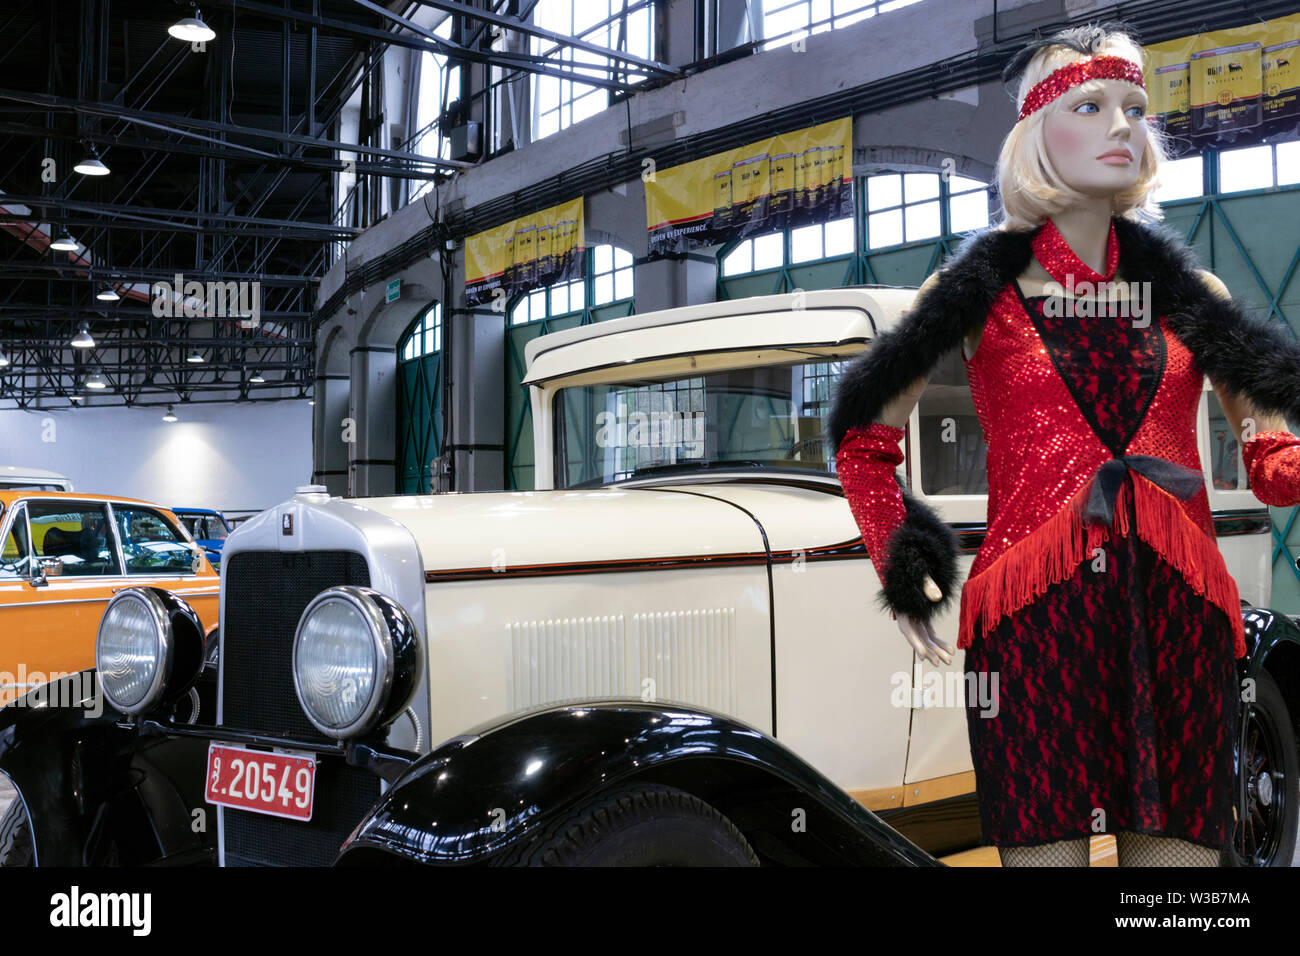 BUDAPEST, HUNGARY - April 05, 2019: Side view of a rare white 1920s classic oldtimer car, with a life size doll in period clothes beside it. - Stock Image